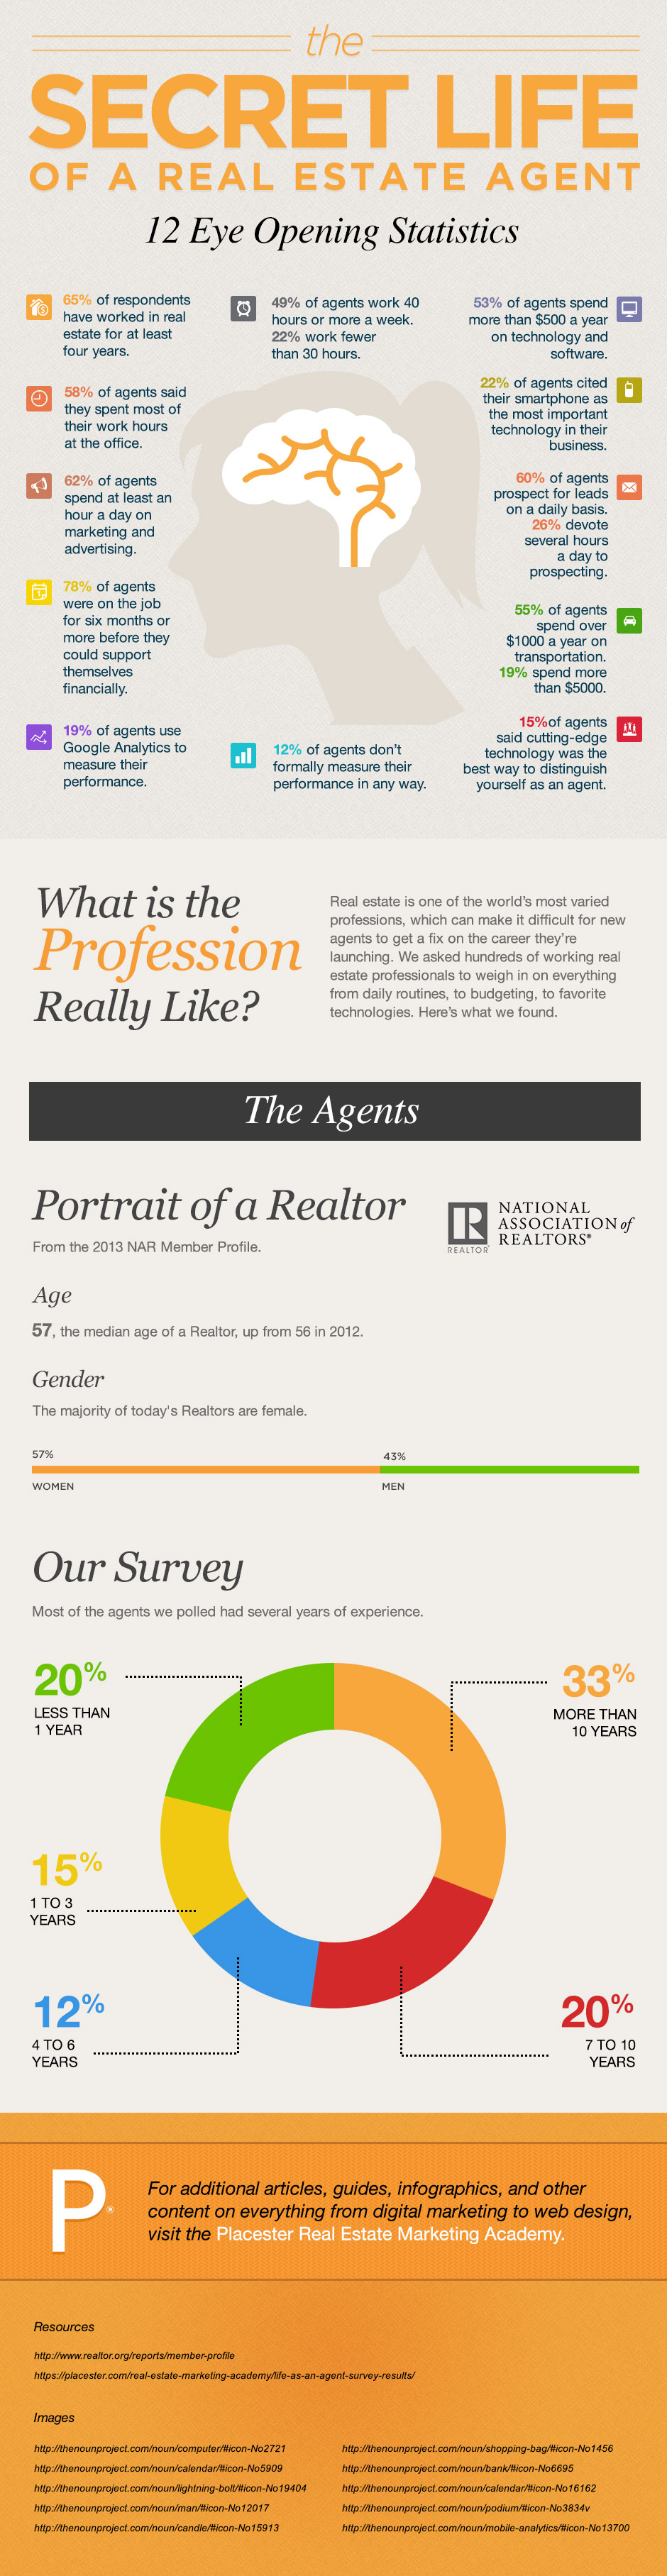 Interesting Statistics of Real Estate Agents